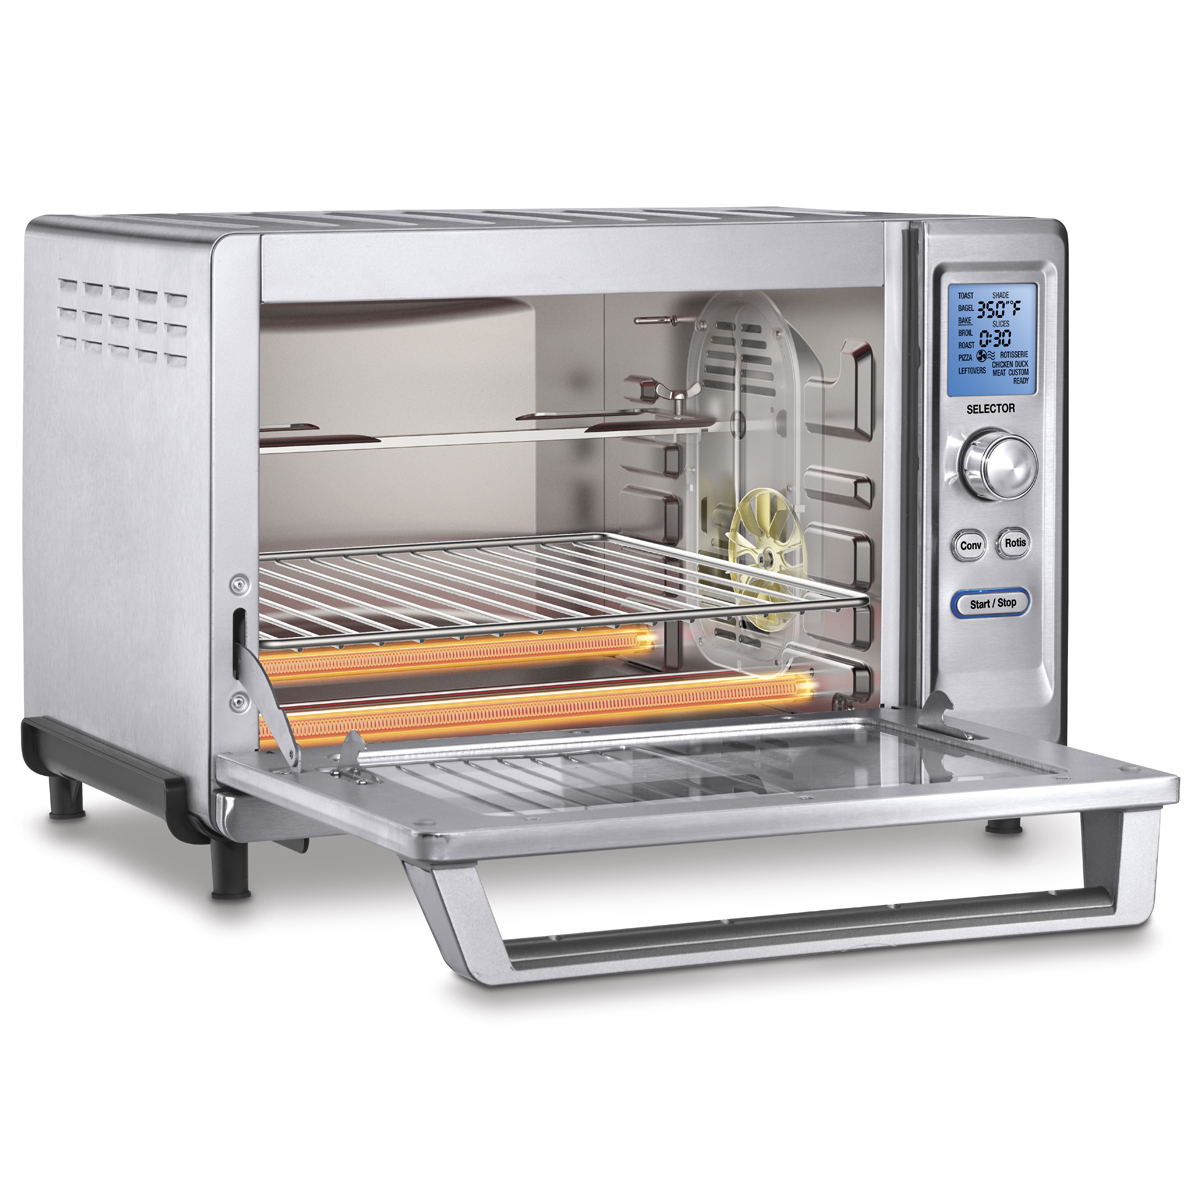 Rotisserie Convection Toaster Oven Cuisinart